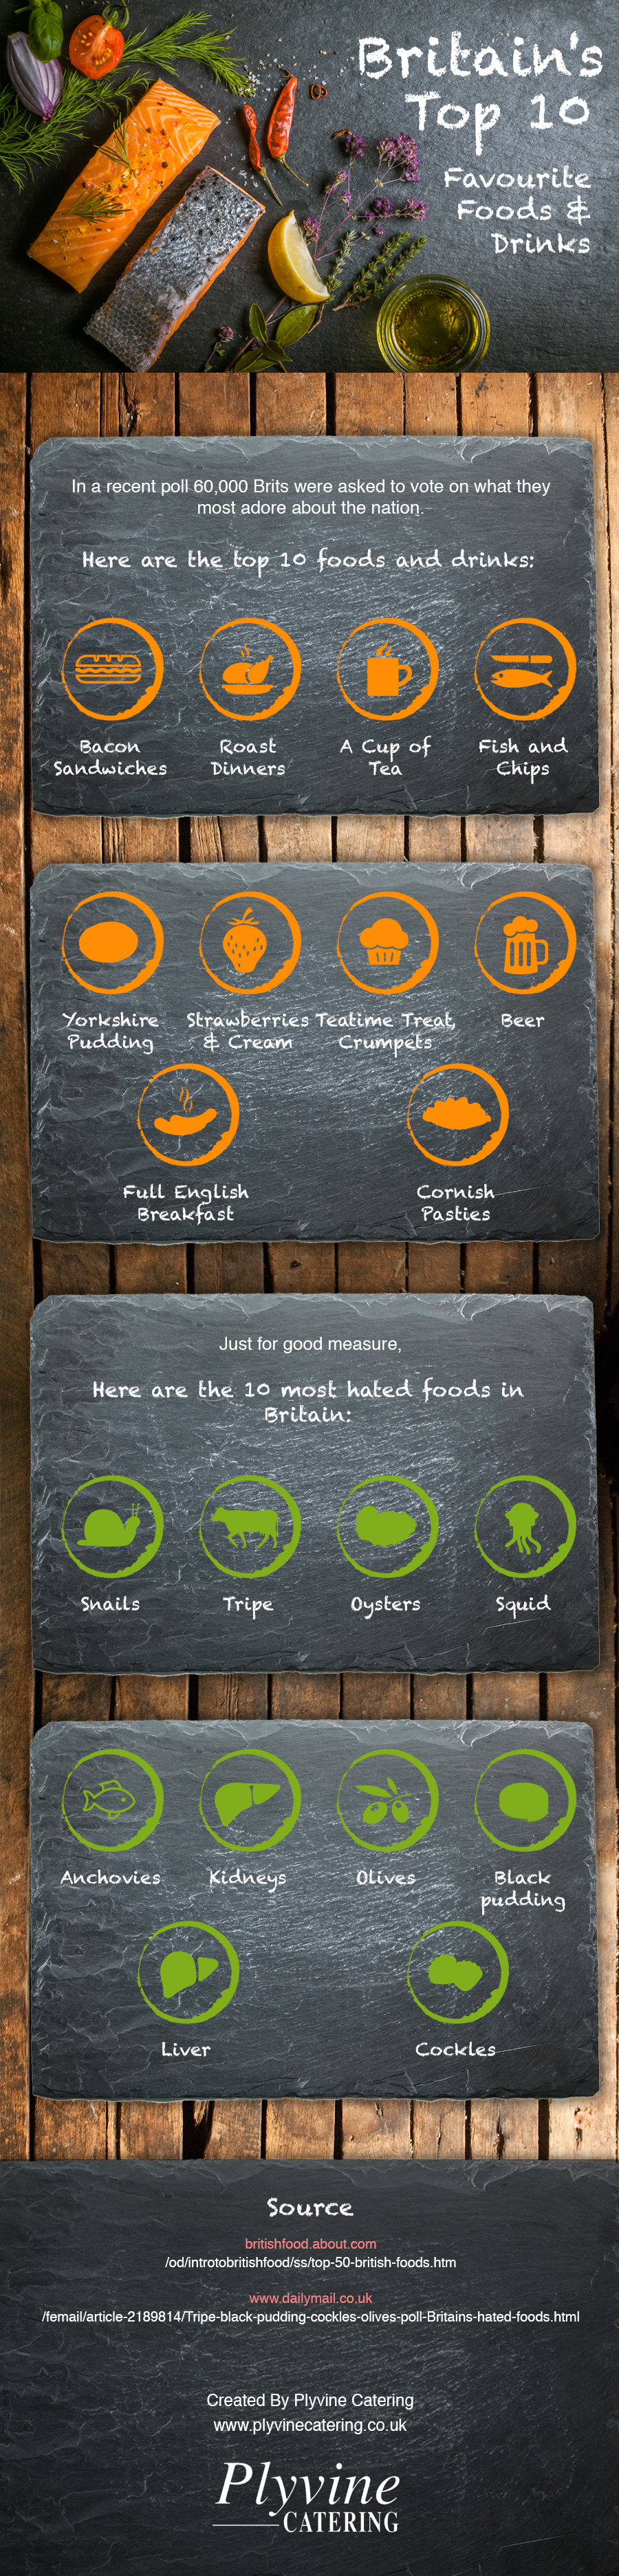 Britain's Top 10 Favourite Foods and Drinks